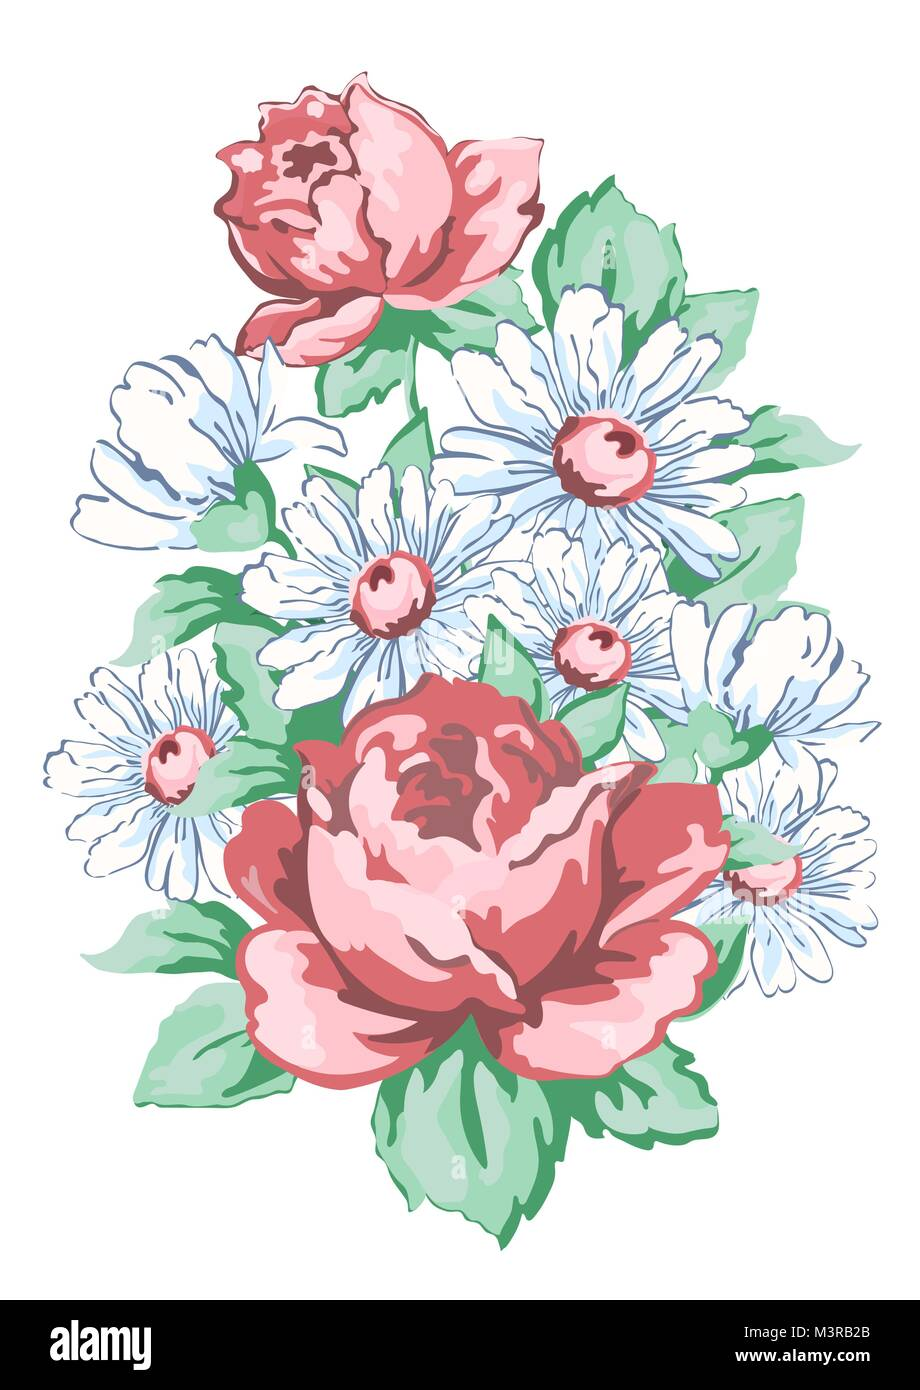 Flowers Hand Drawn Floral Embroidery Design Fabric Print Vector Stock Vector Image Art Alamy